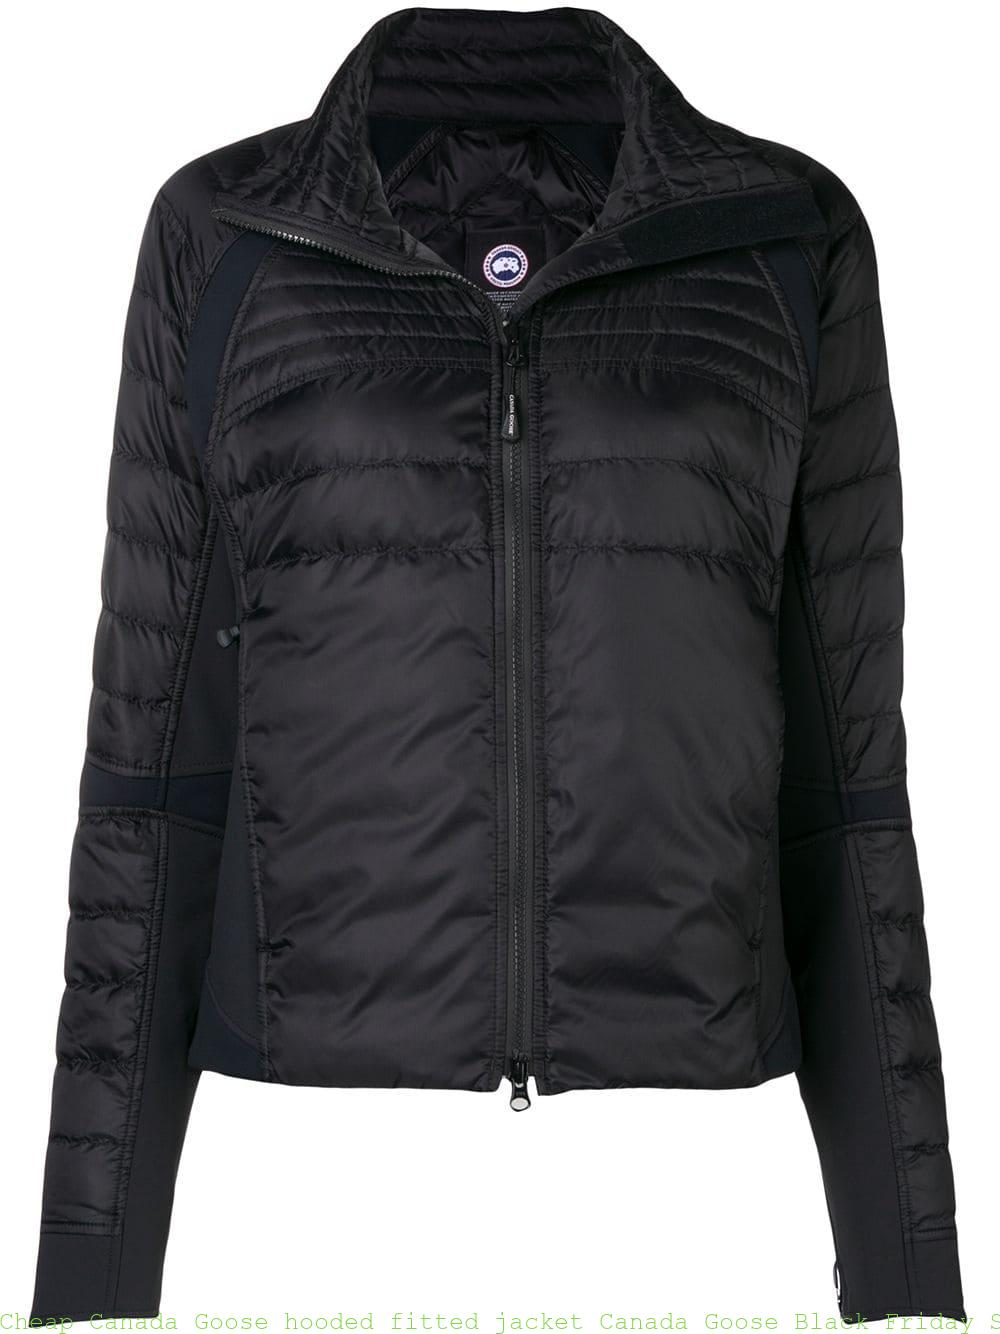 4143cae07 Cheap Canada Goose hooded fitted jacket Canada Goose Black Friday Sale  13174465